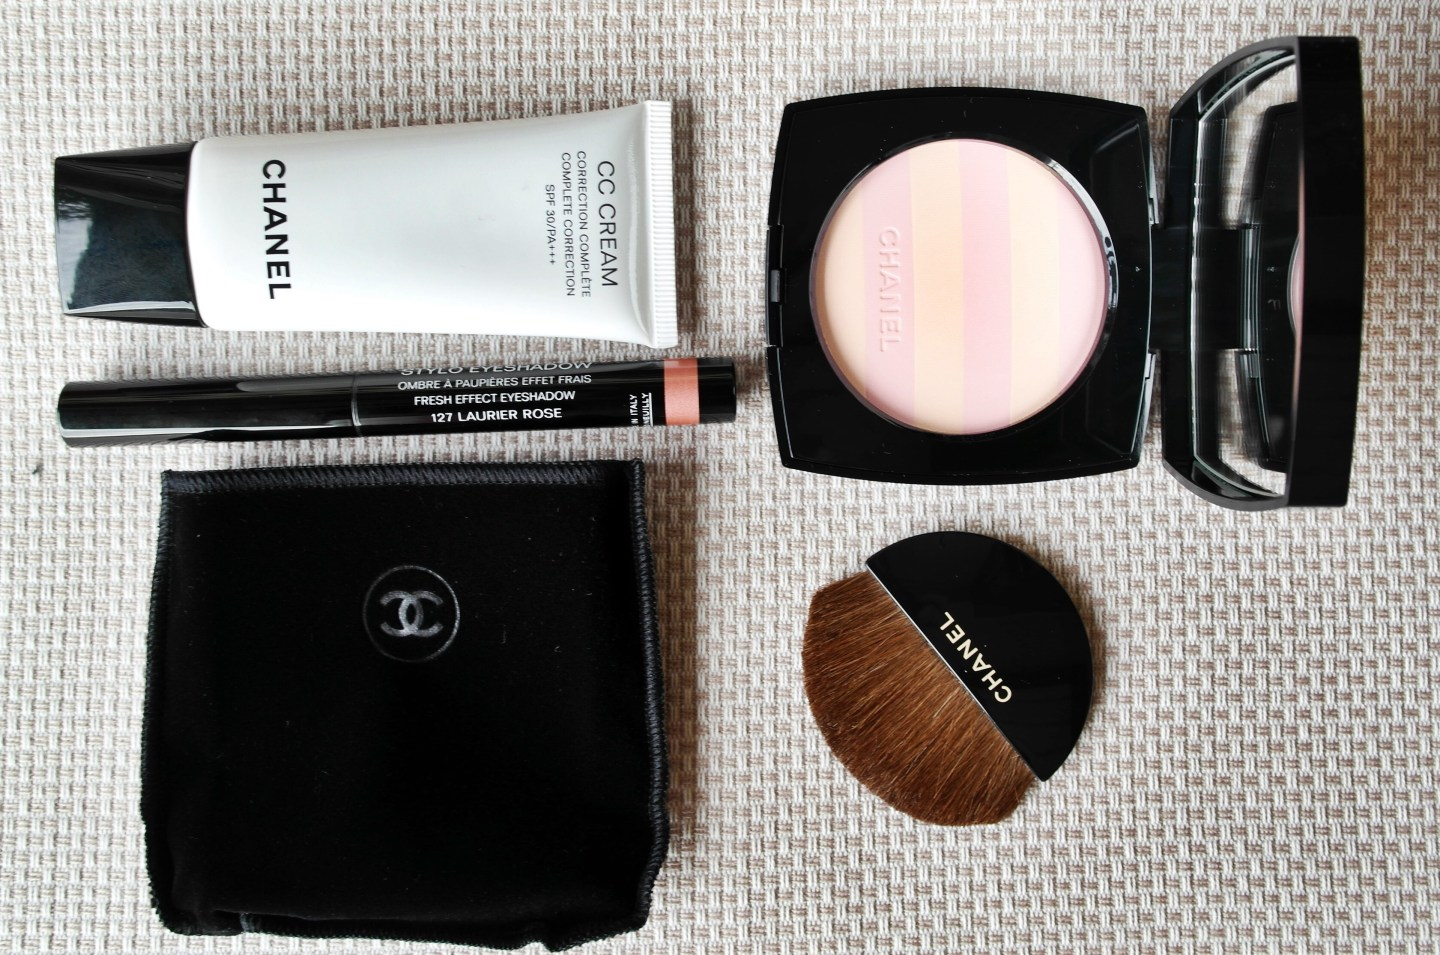 Chanel Stylo Fresh Effect Eyeshadow in Laurier Rose, Chanel Les Beiges Healthy Glow Multi-Colour Powder in Marinière and Chanel CC Cream